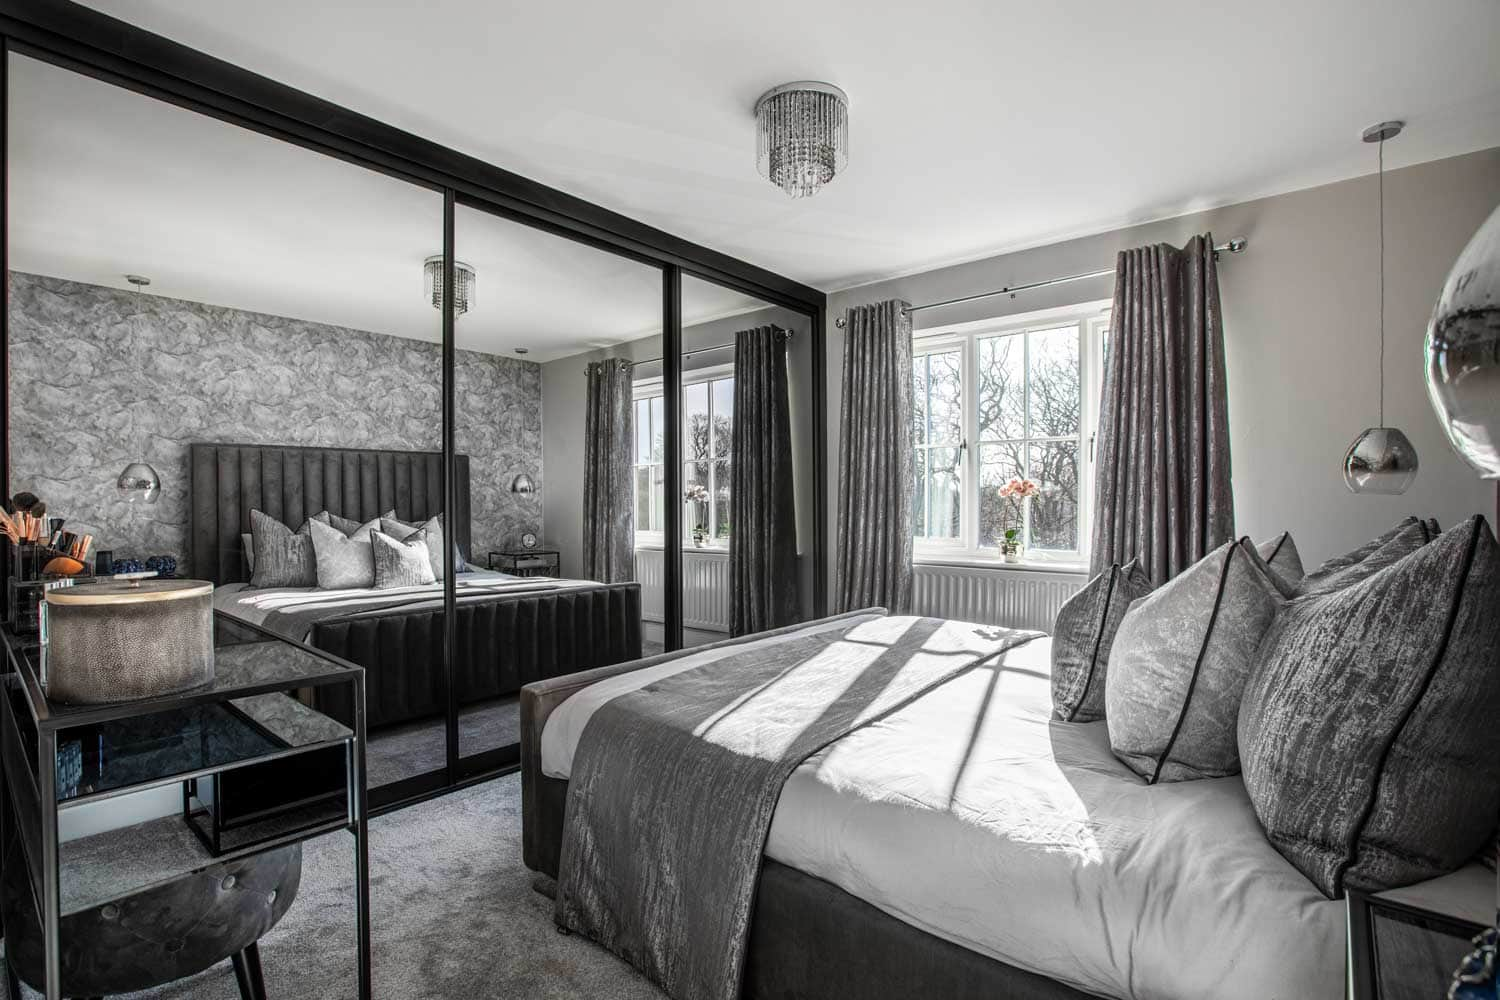 inside view of a bedroom in a house for interior designer